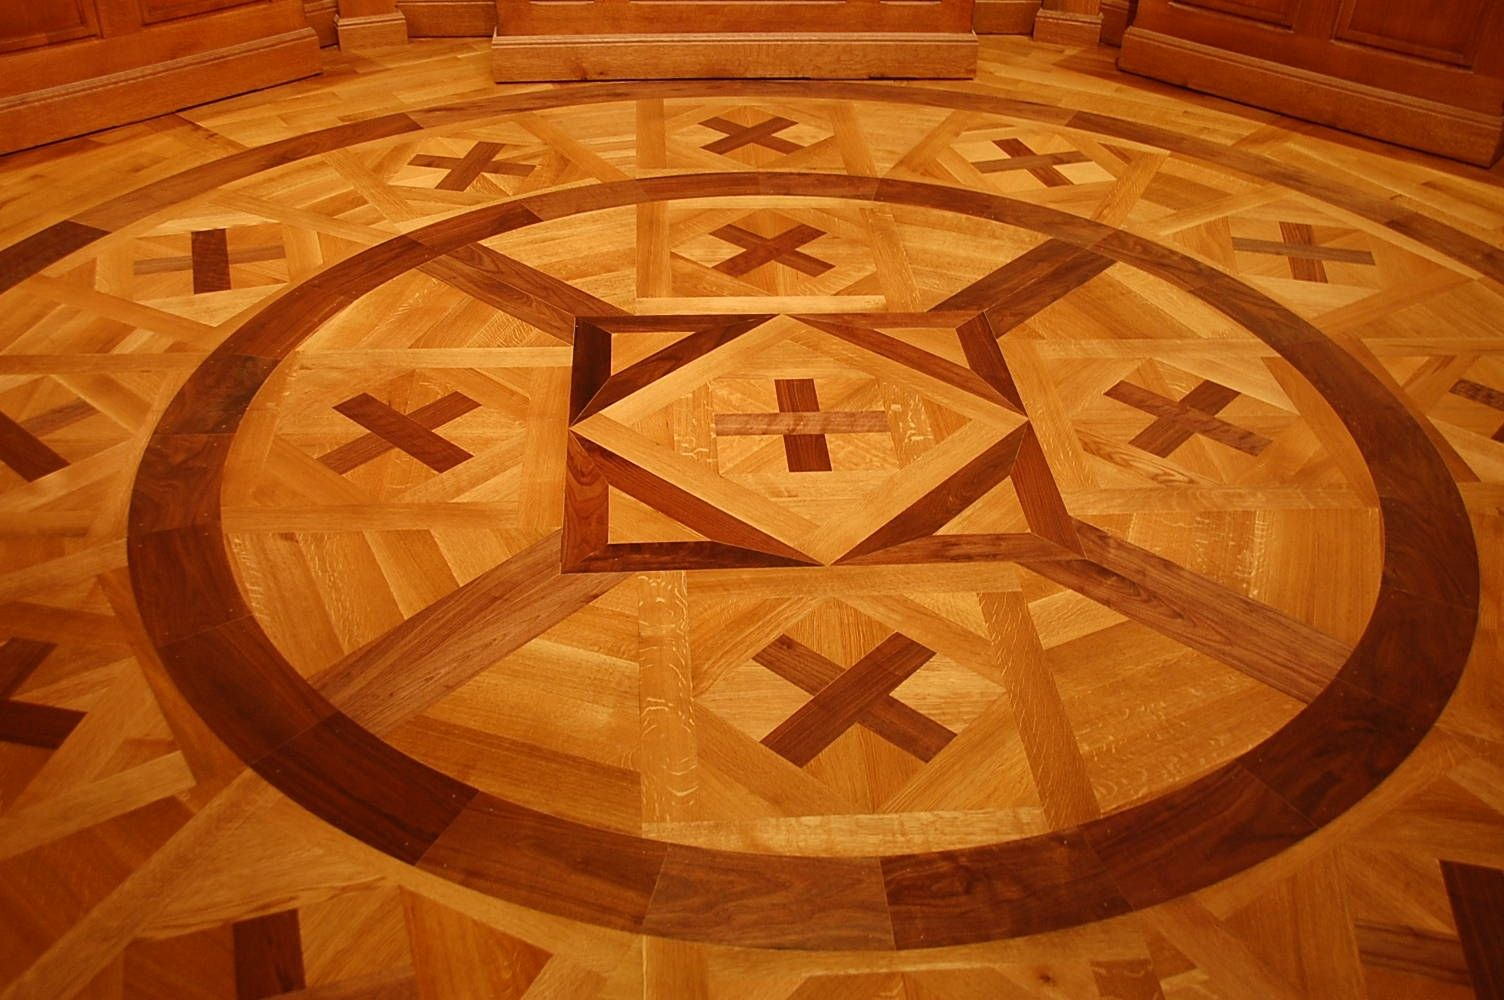 Hand Made Decorative Wood Floor Inlay By Corey Morgan Wood